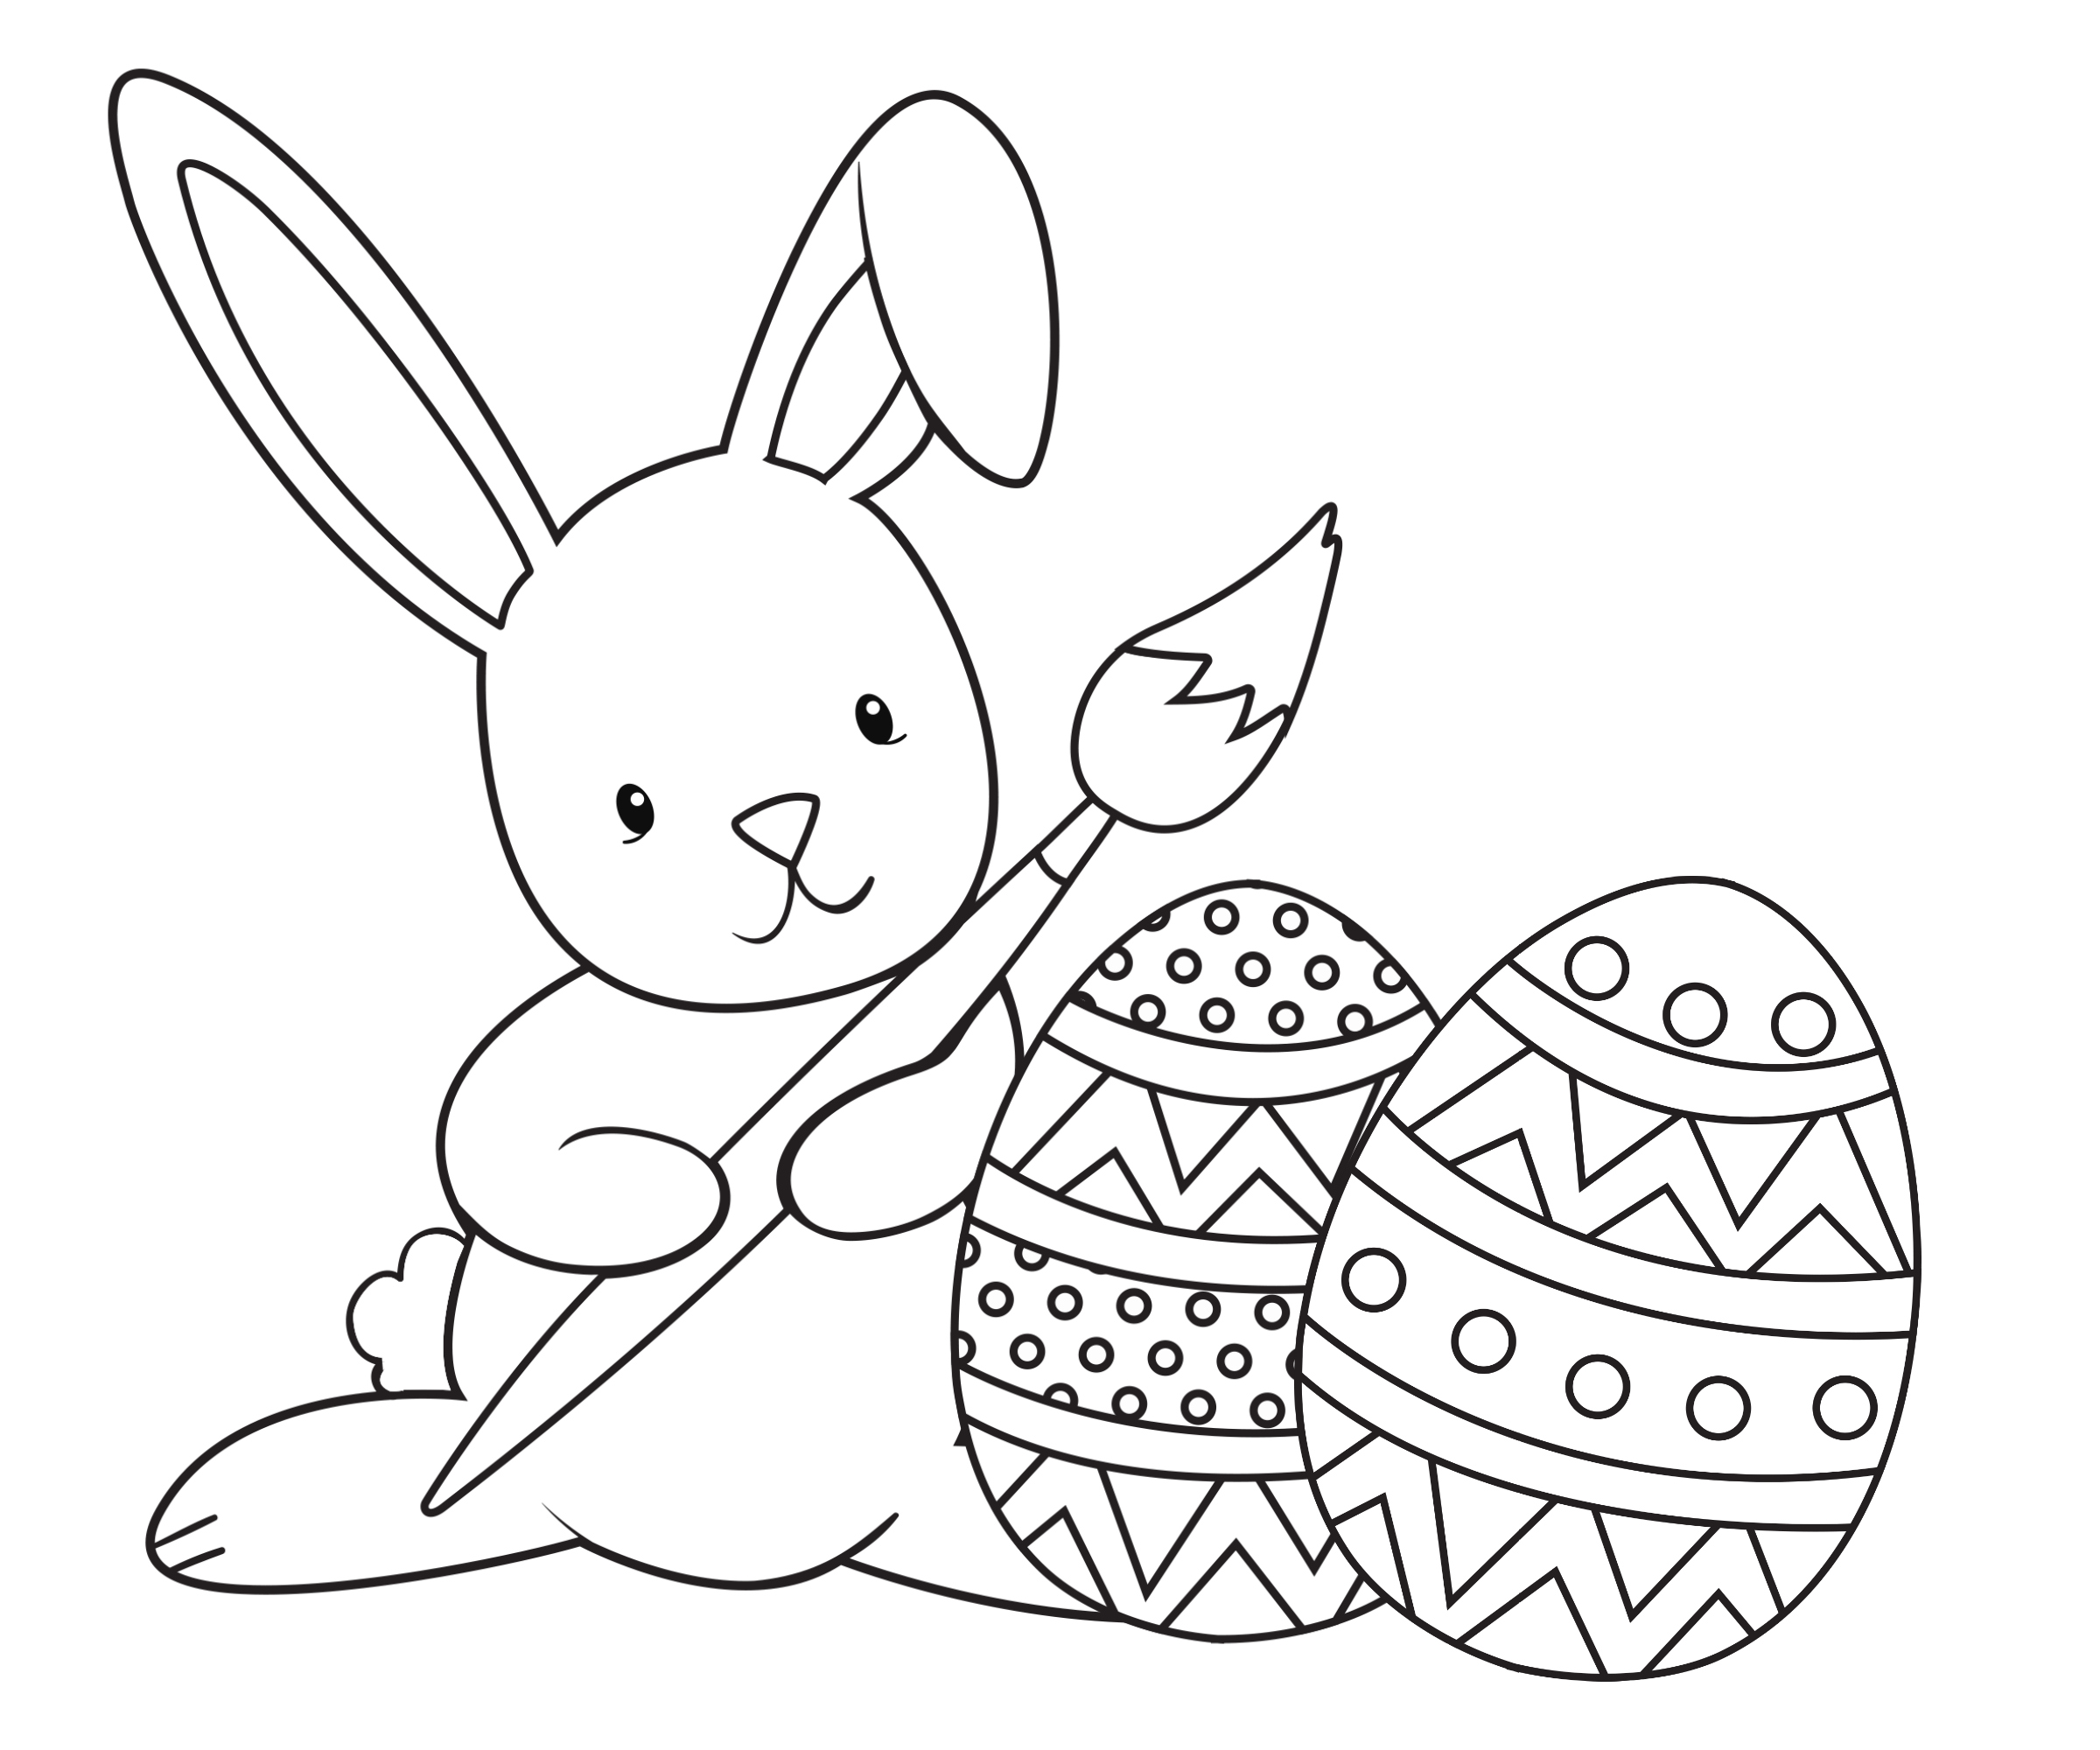 Mesmerizing image within easter egg printable coloring pages